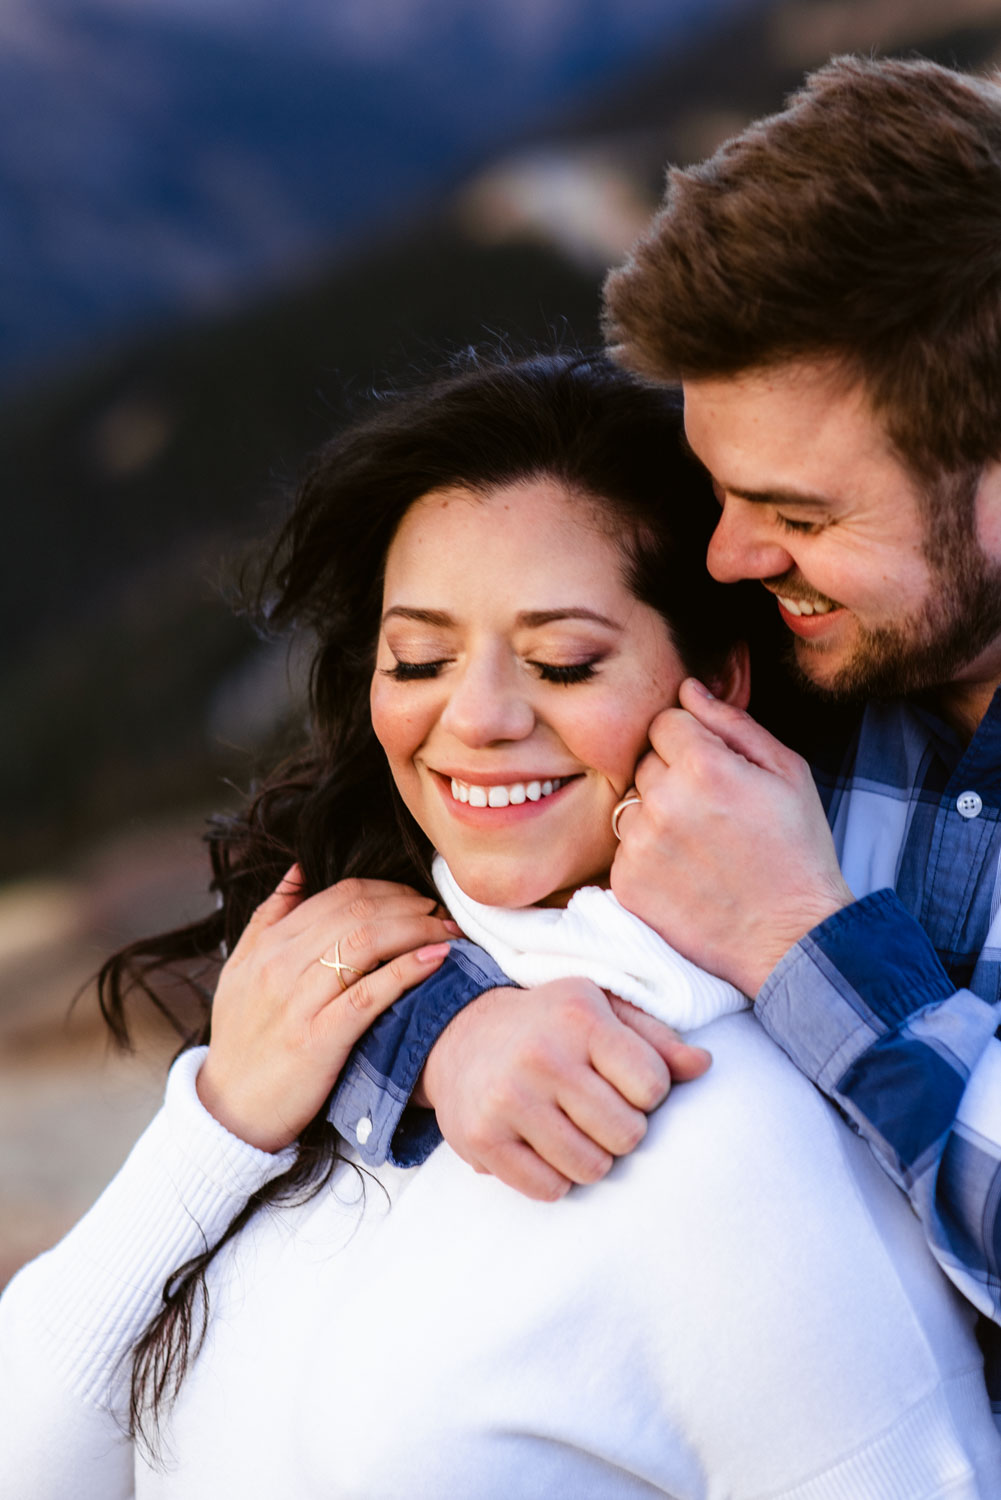 Couple smiles at one another while embracing on top of Colorado's Loveland Pass, a beautiful mountain pass with easy access from Denver. Loveland Pass is one of the best locations near Denver for engagement photos.